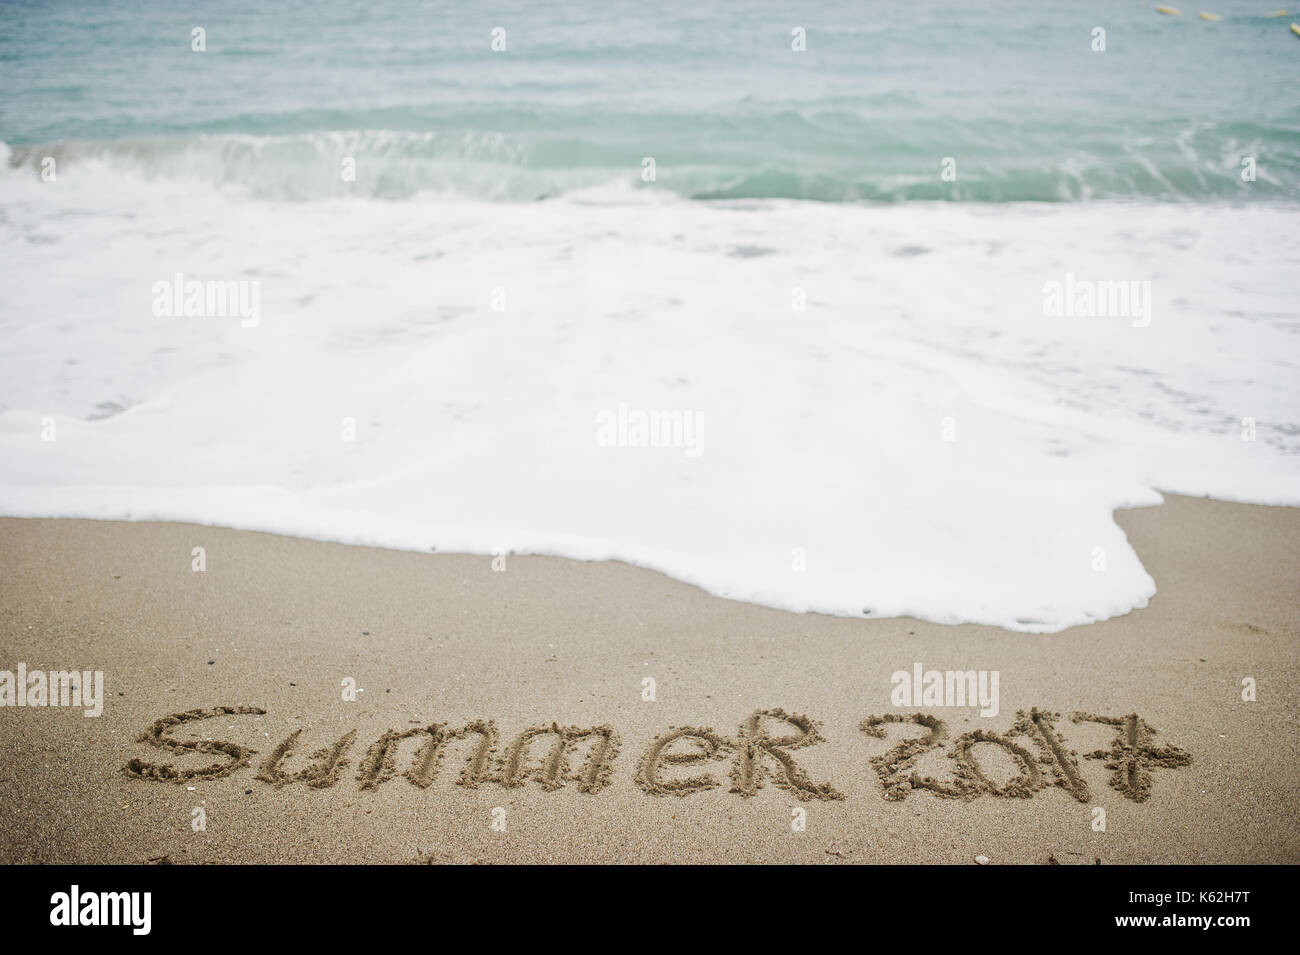 Summer 2017 End. New Year 2018 Is Coming Concept. Sea And Sand